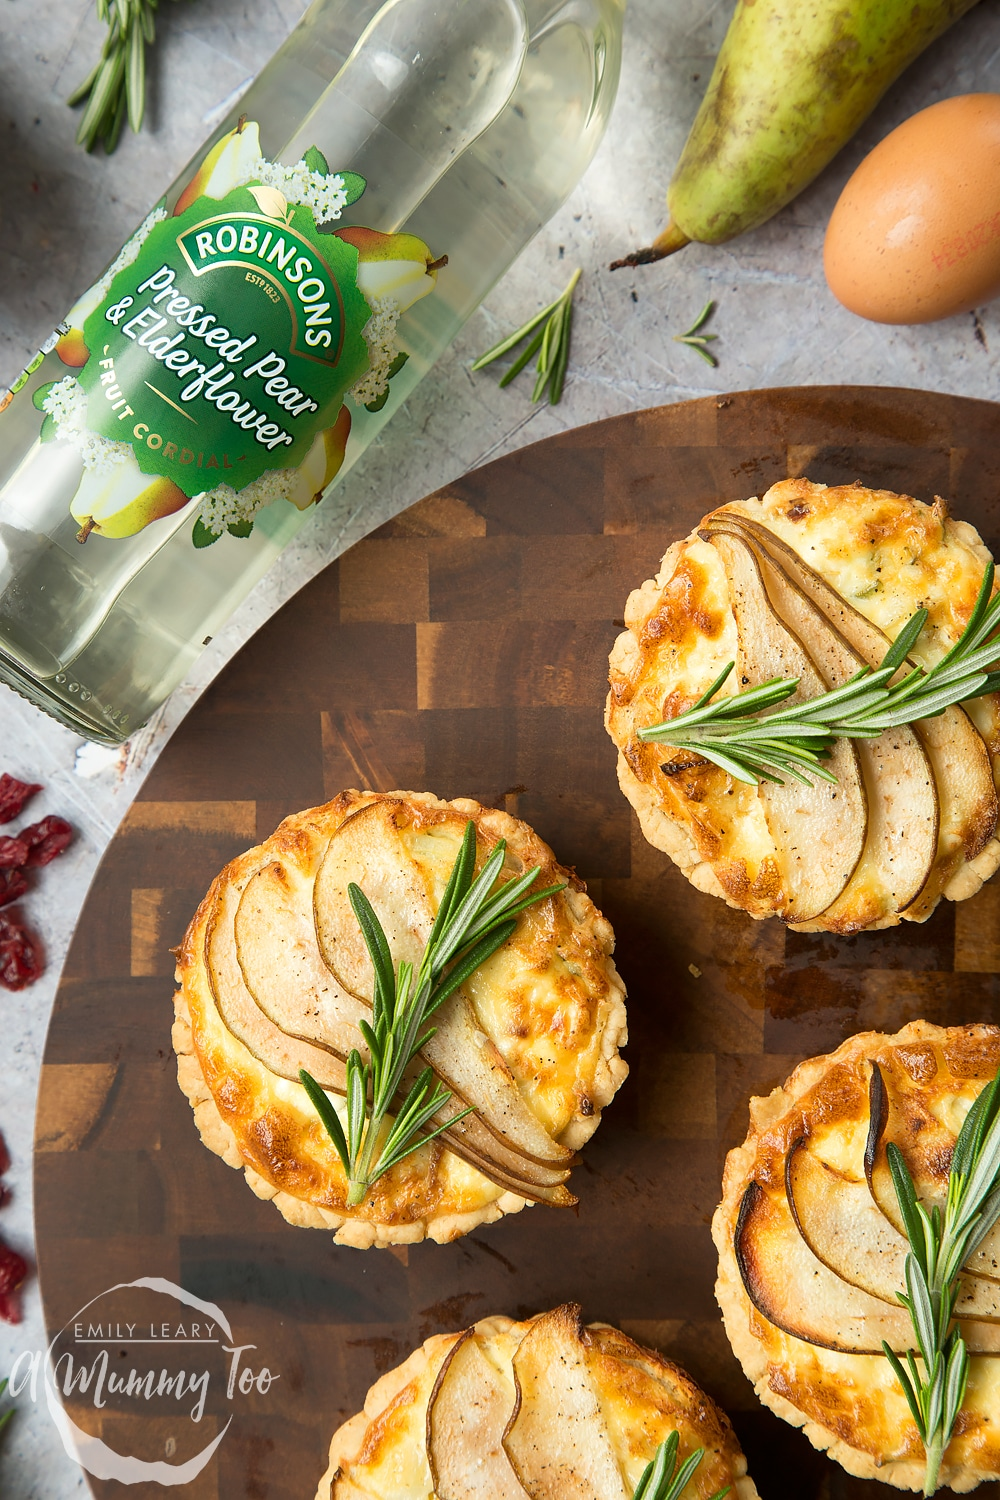 Serve these rosemary goat's cheese tarts with Robinsons fruit cordials for the perfect Summer lunch!